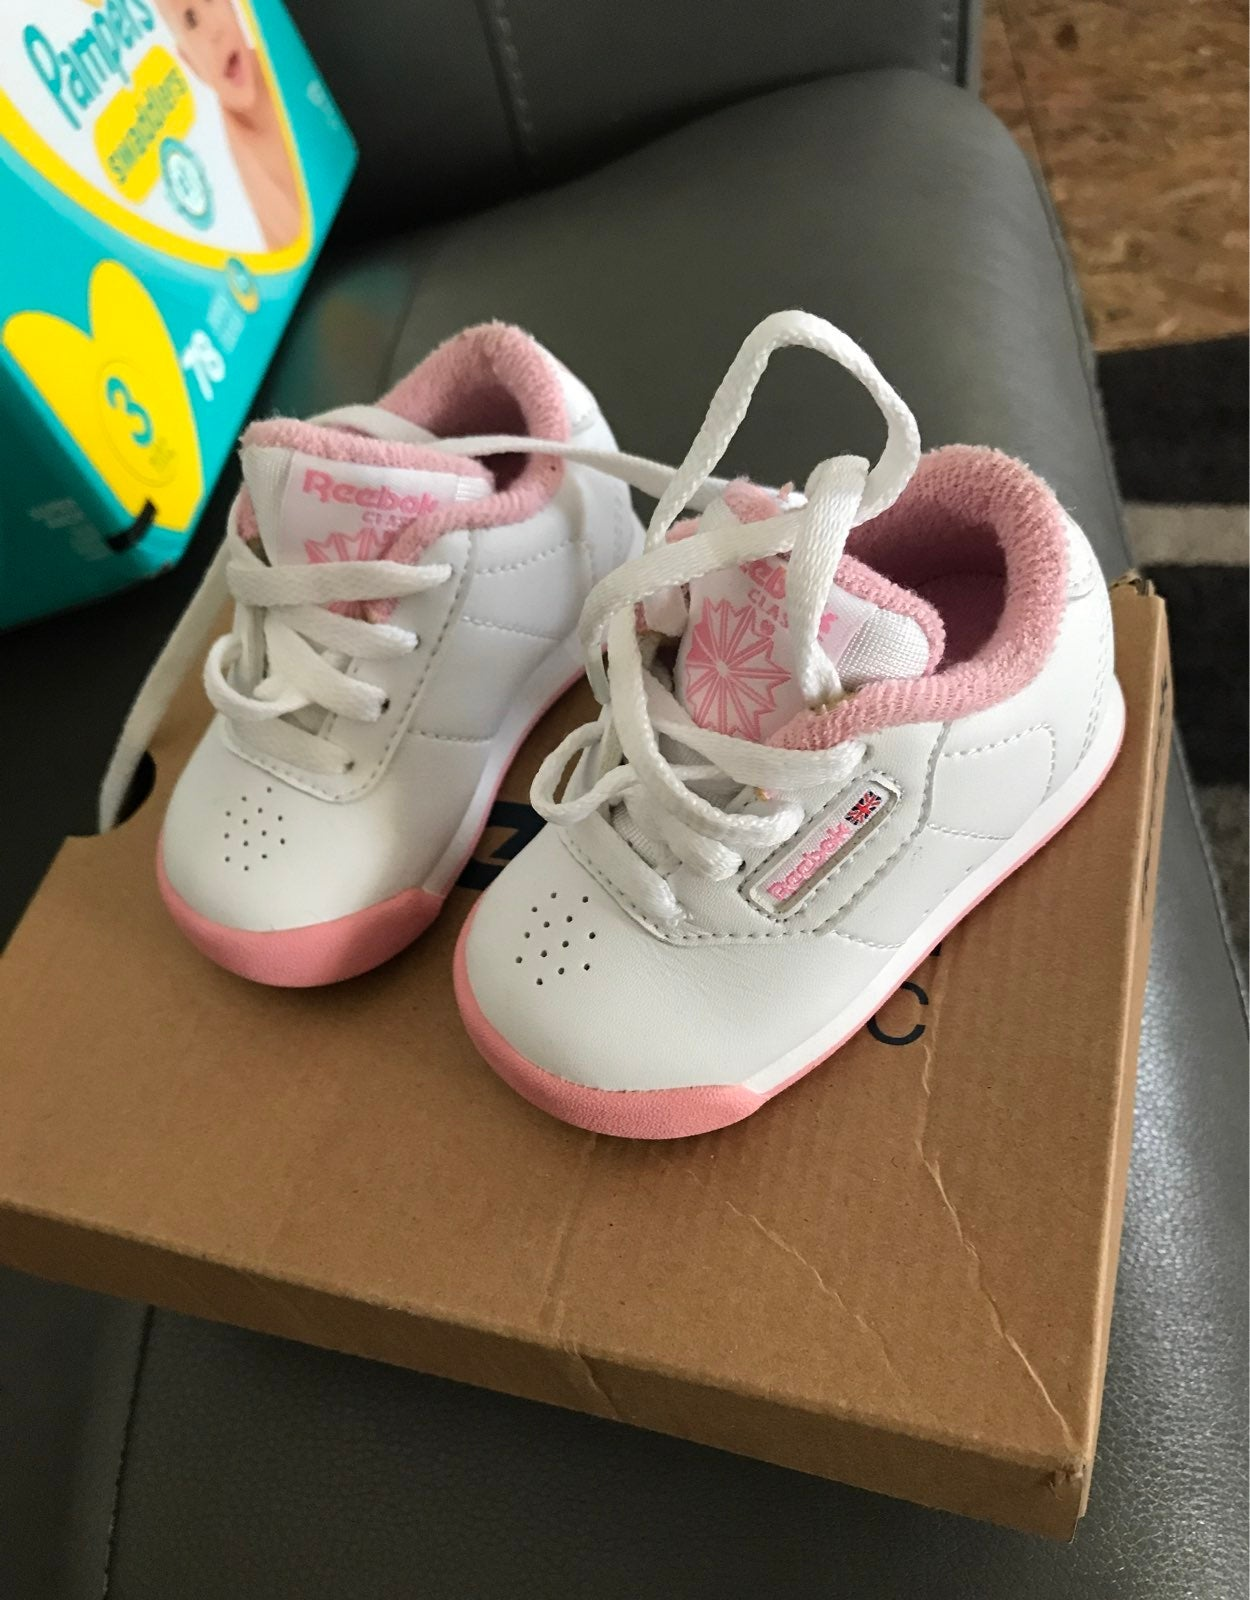 Reebox baby shoes